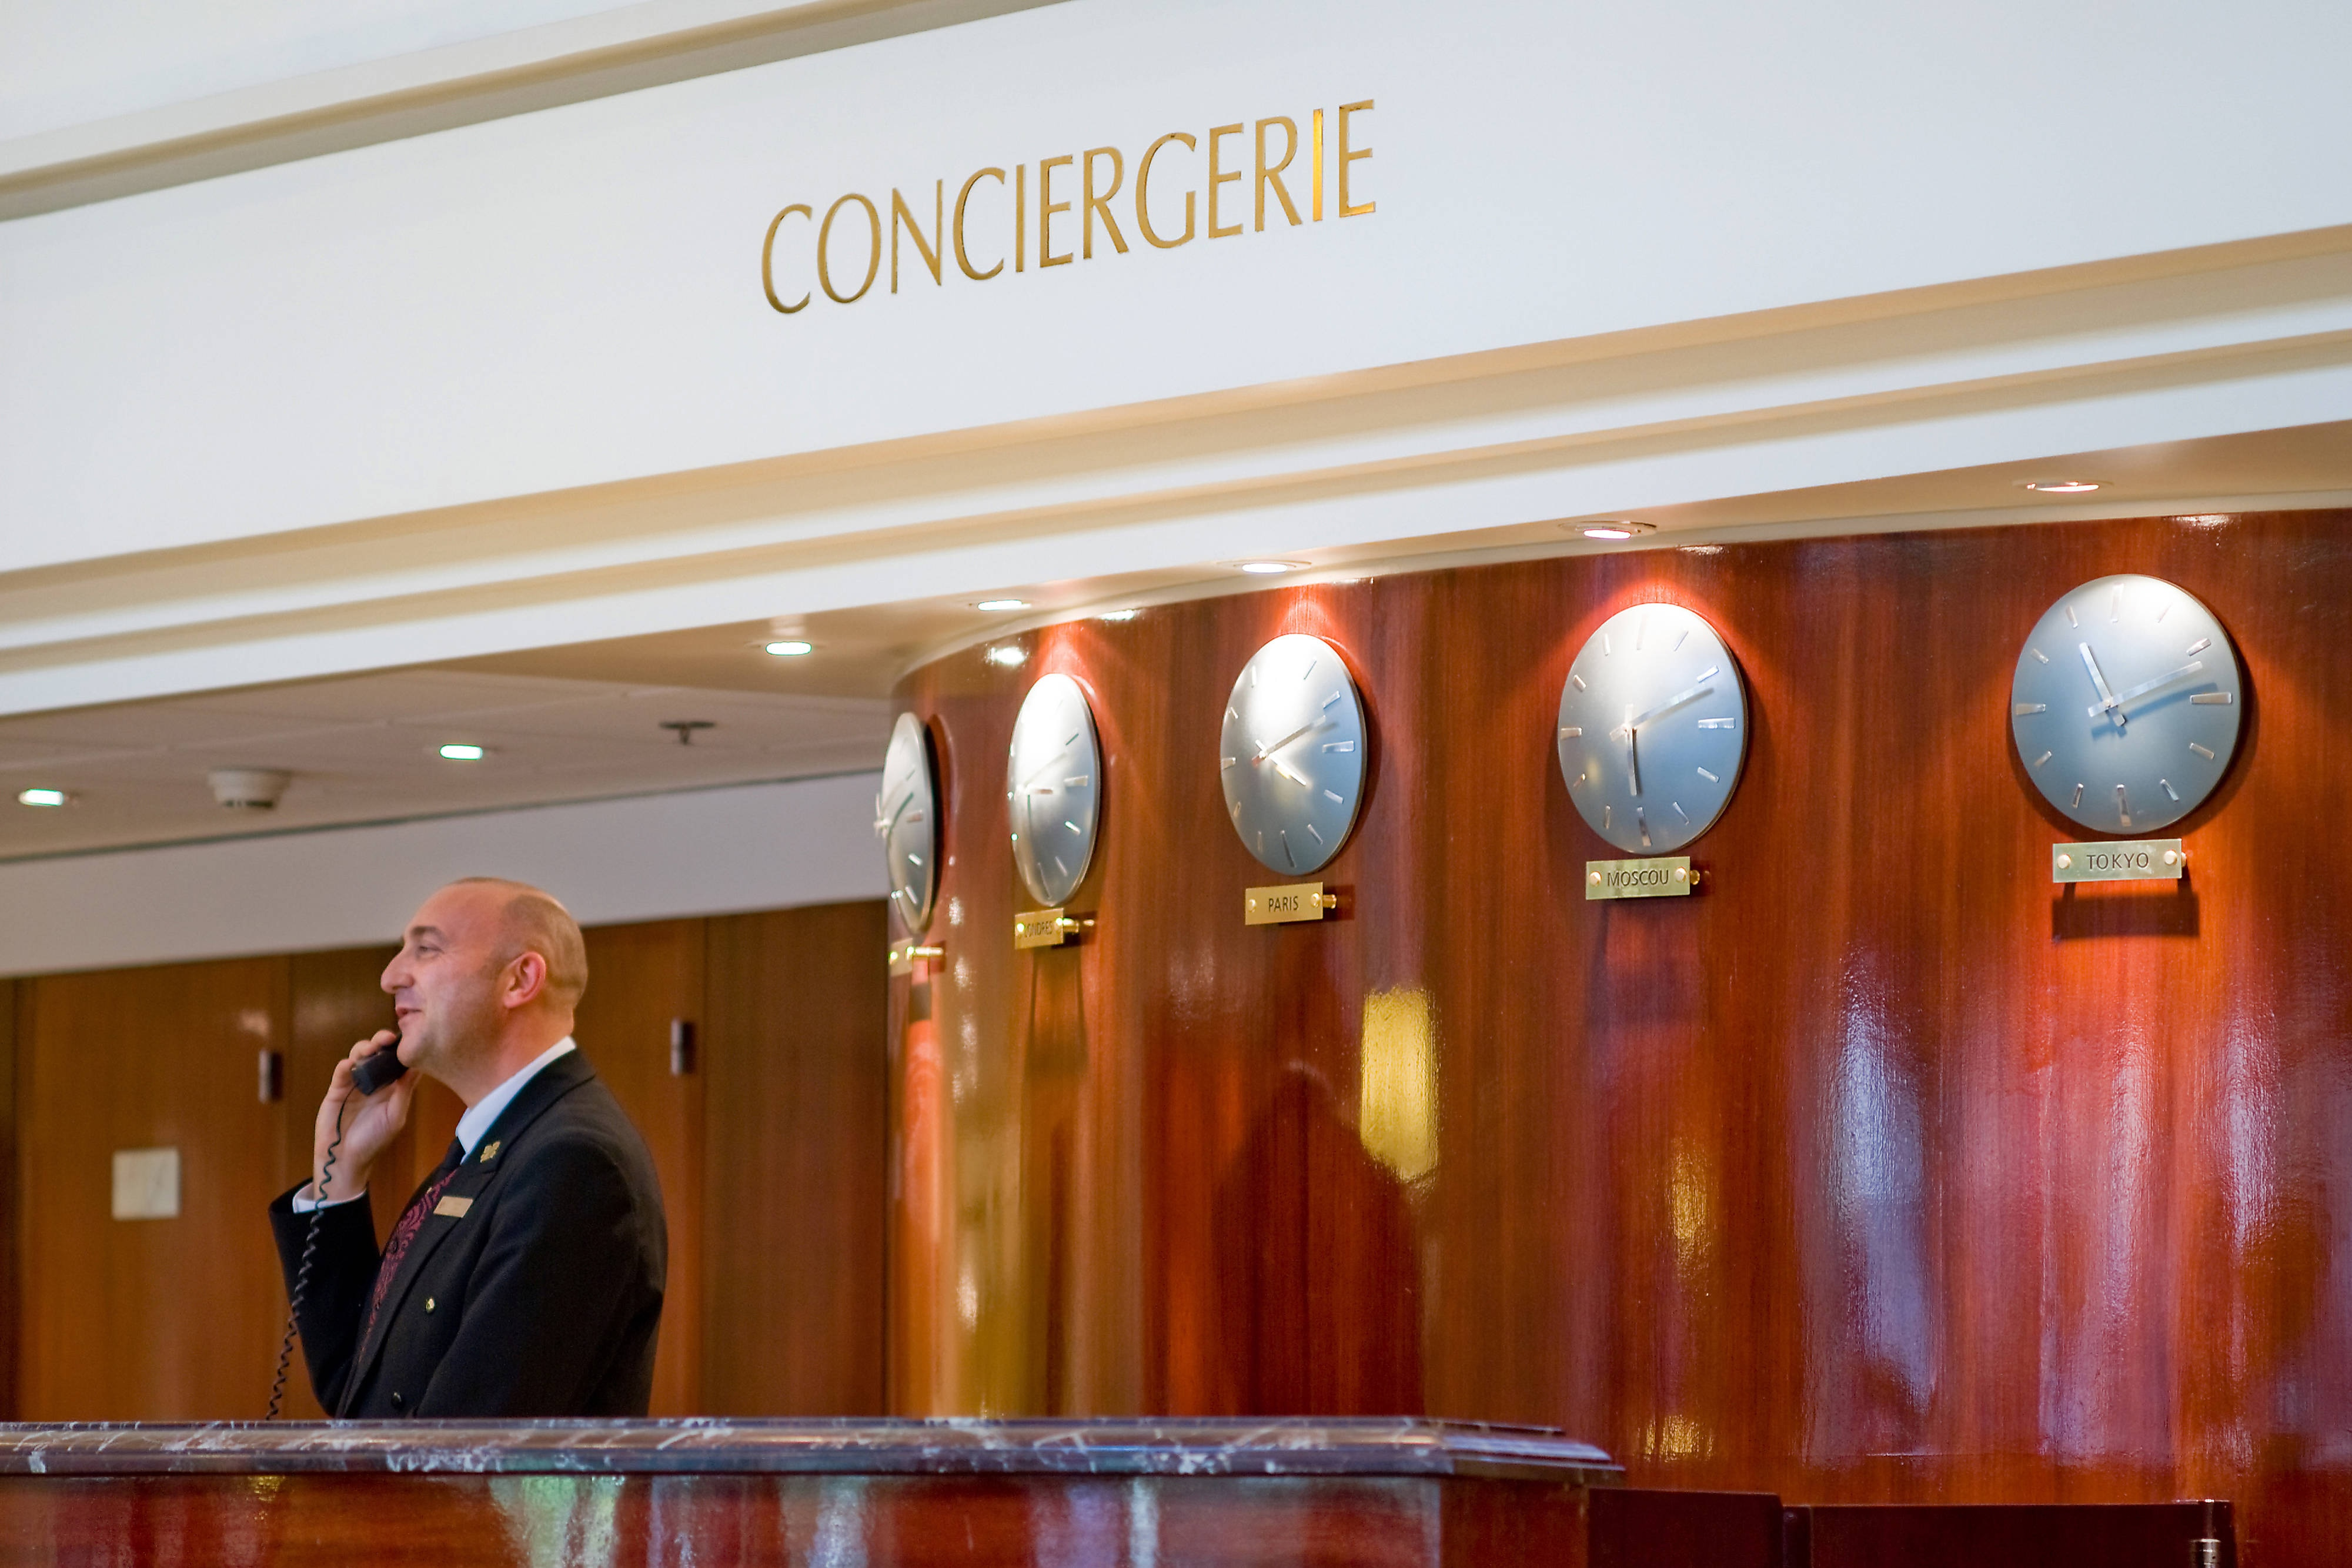 Hotel lobby and concierge desk